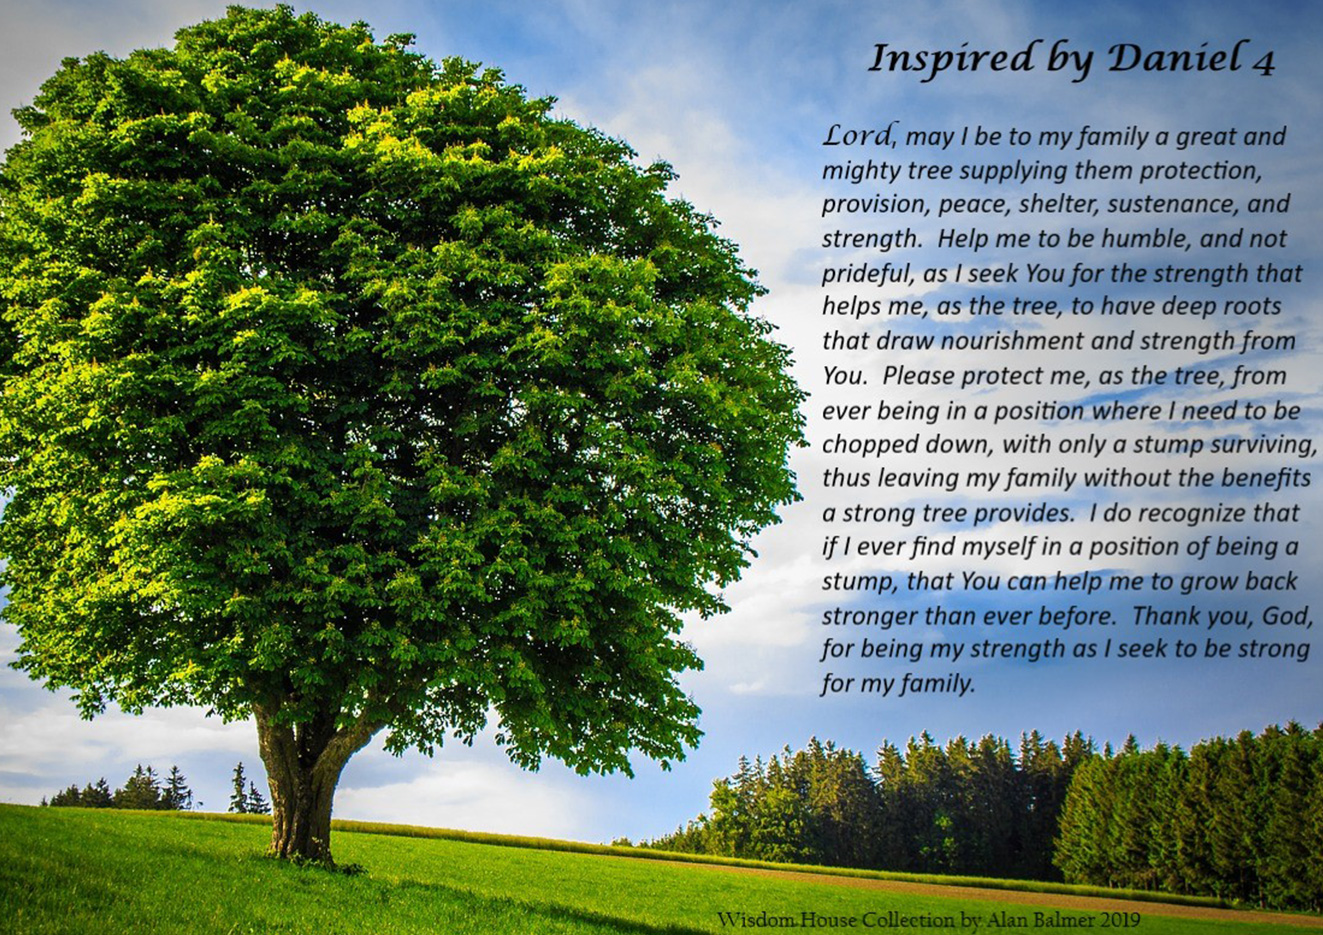 The Family Prayer Based on the Tree from Daniel 4 -